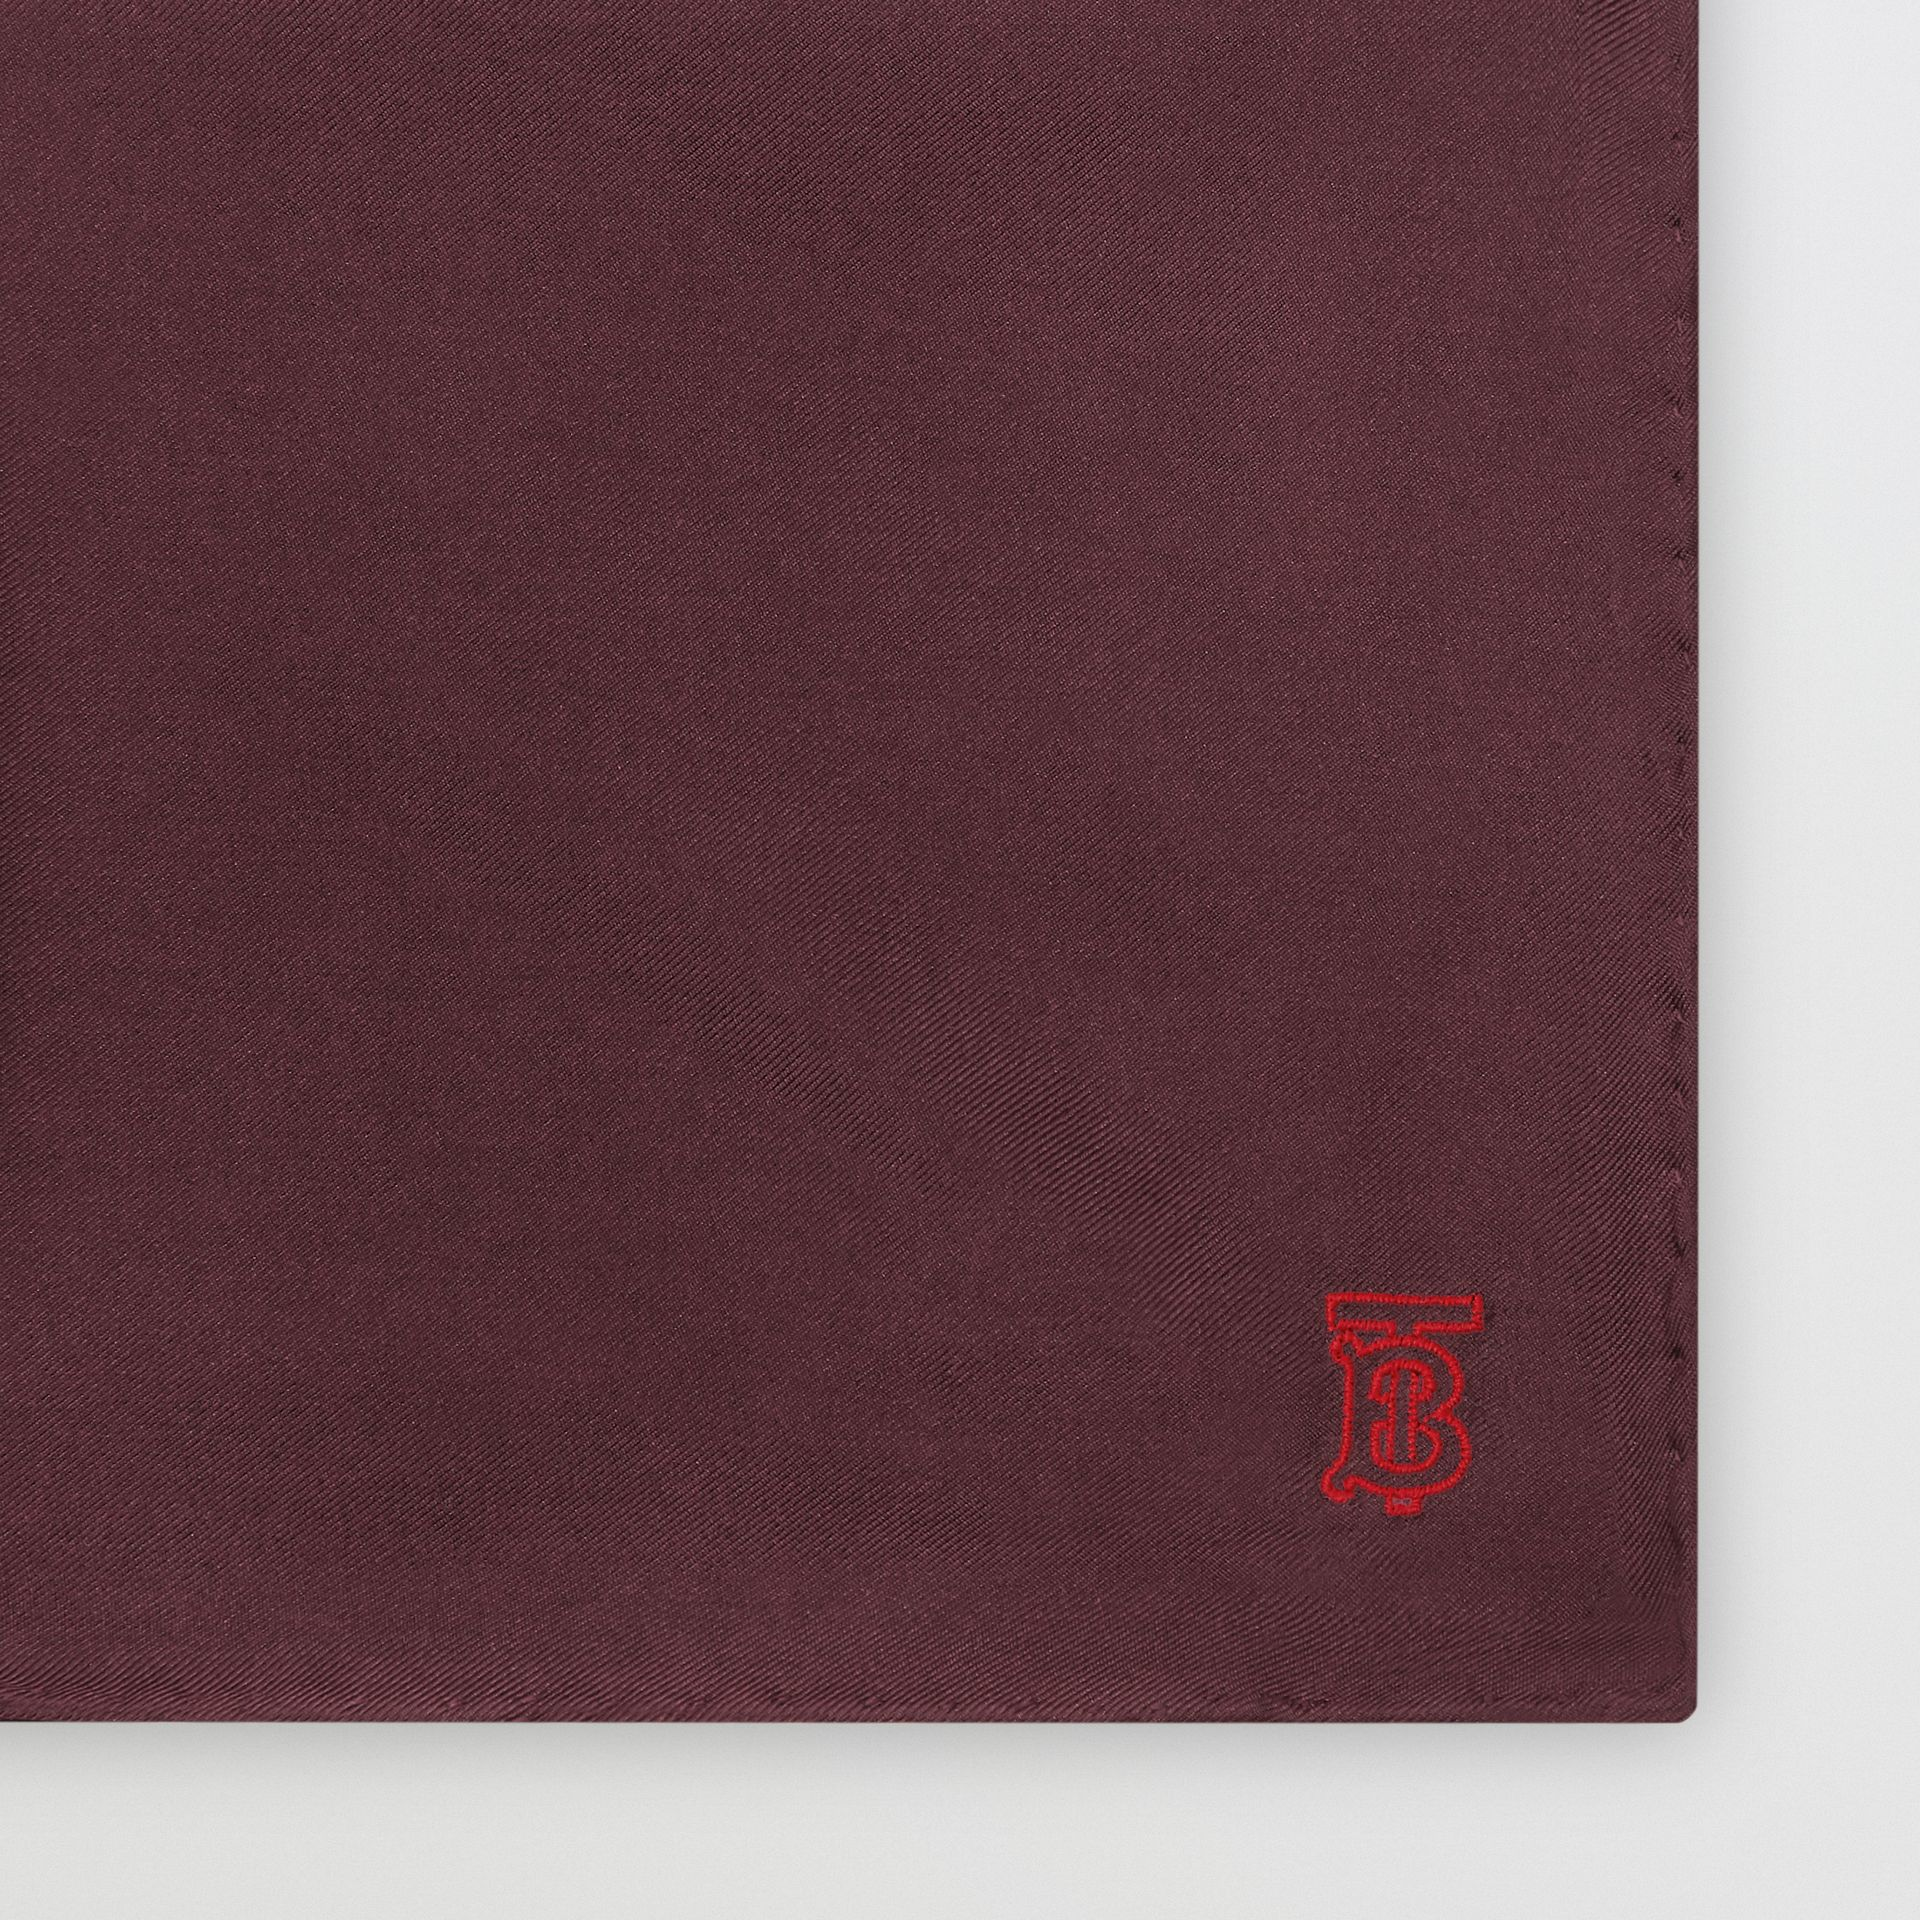 Monogram Motif Silk Pocket Square in Burgundy - Men | Burberry - gallery image 1